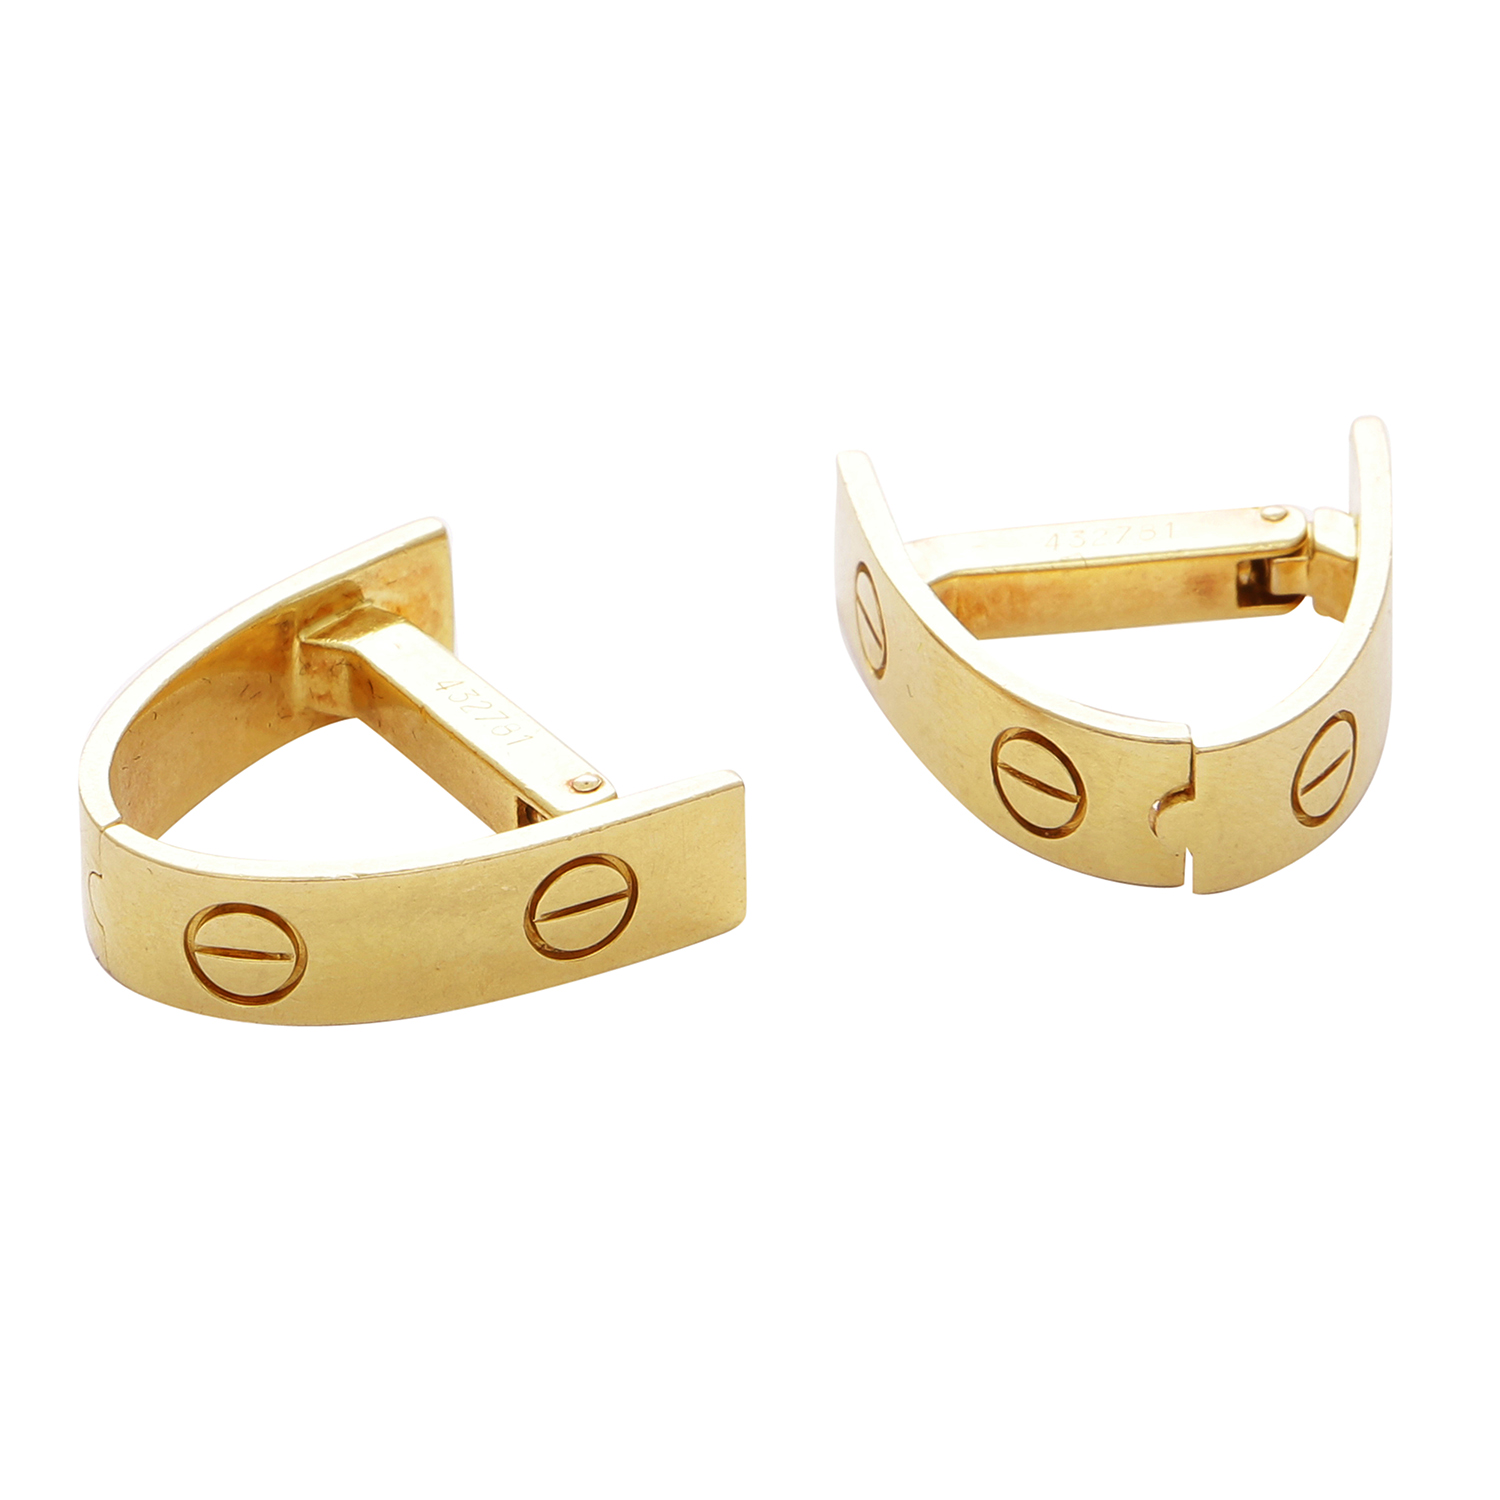 A PAIR OF LOVE CUFFLINKS BY CARTIER in 18ct yellow gold, with screw head designs, signed Cartier and